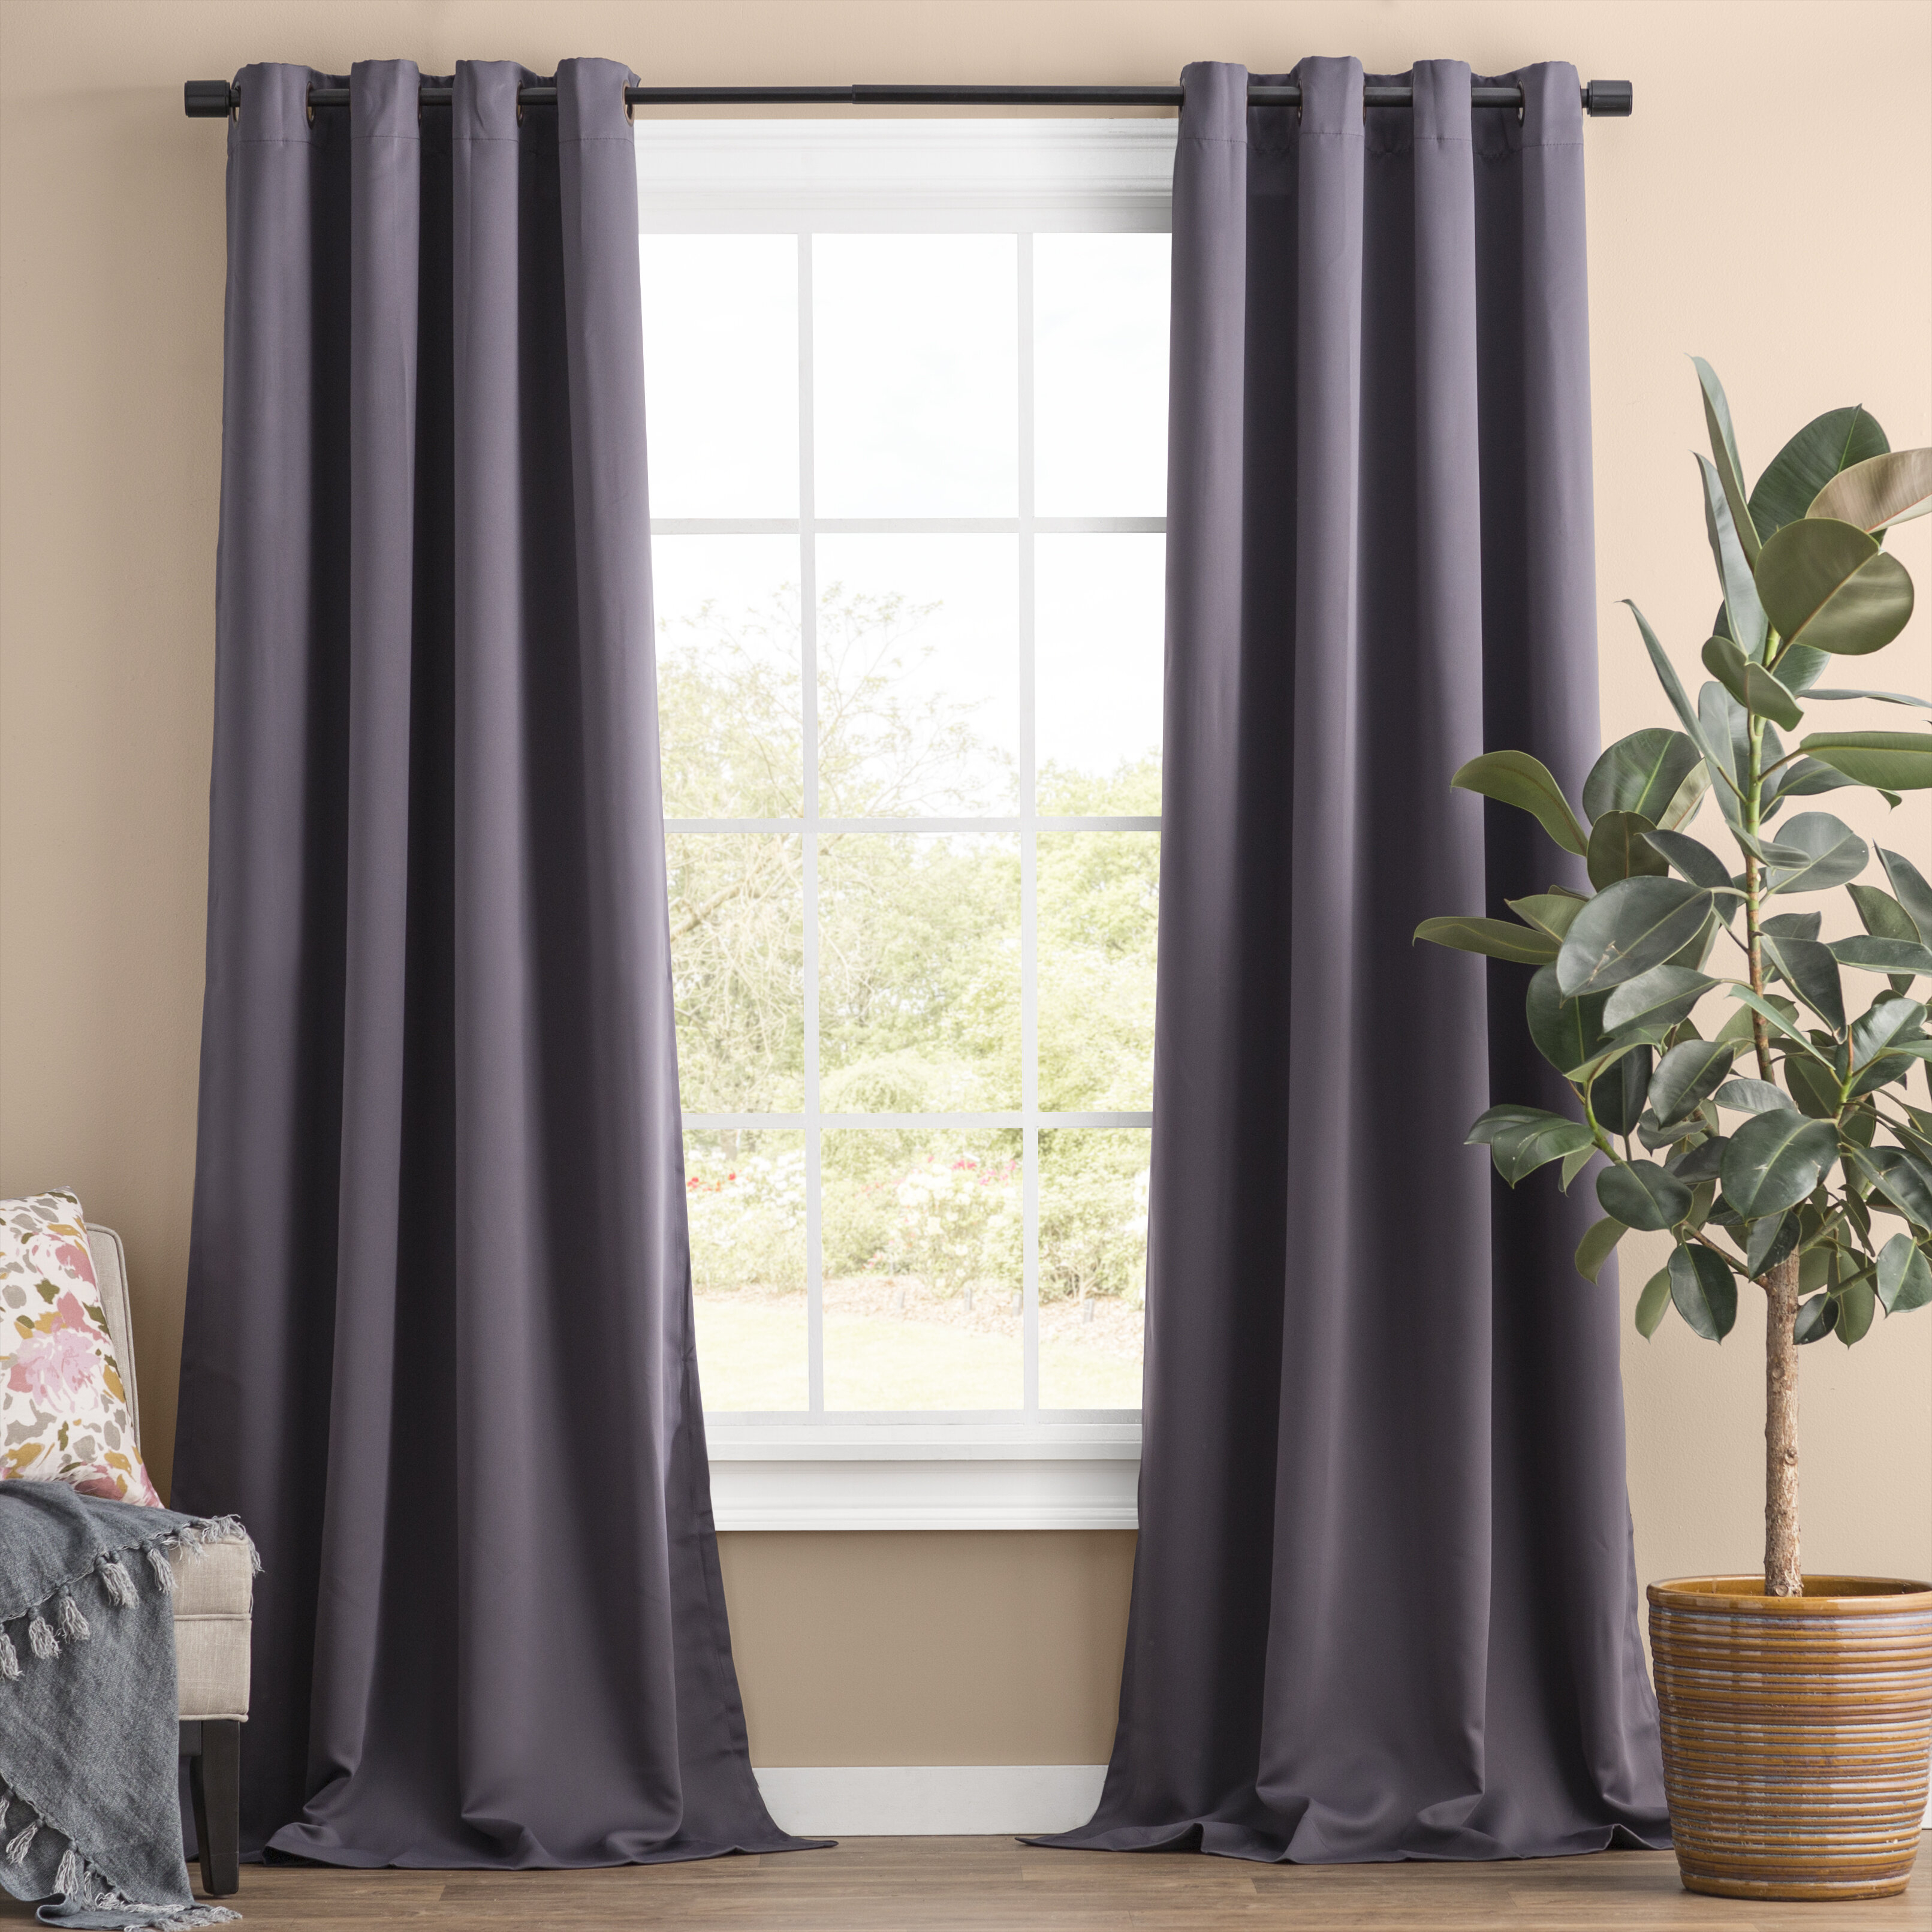 Solid Blackout Thermal Grommet Curtain Panels & Reviews Throughout Thermal Woven Blackout Grommet Top Curtain Panel Pairs (View 17 of 30)